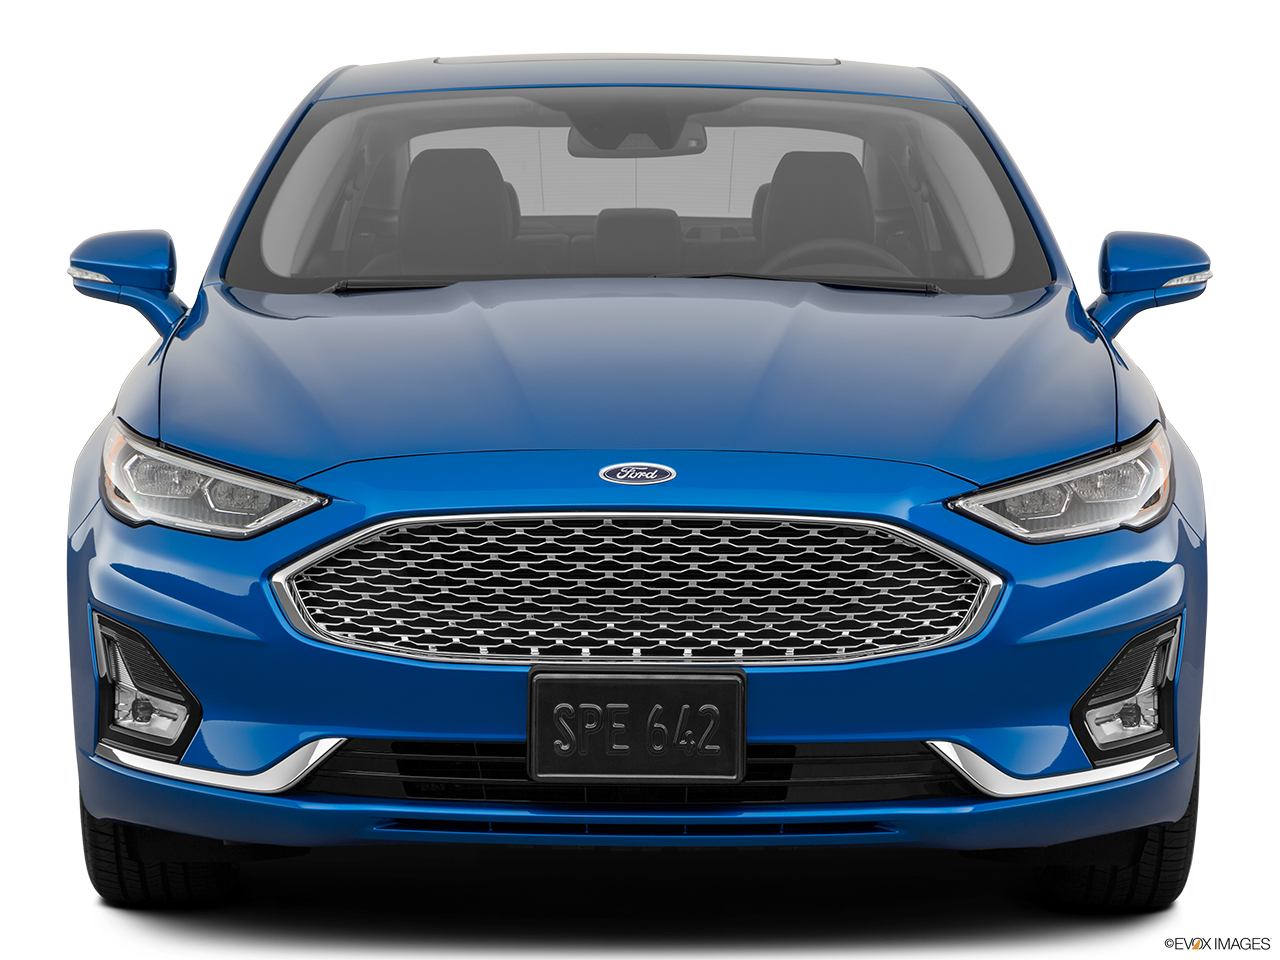 Front view of the Ford Fusion Energi